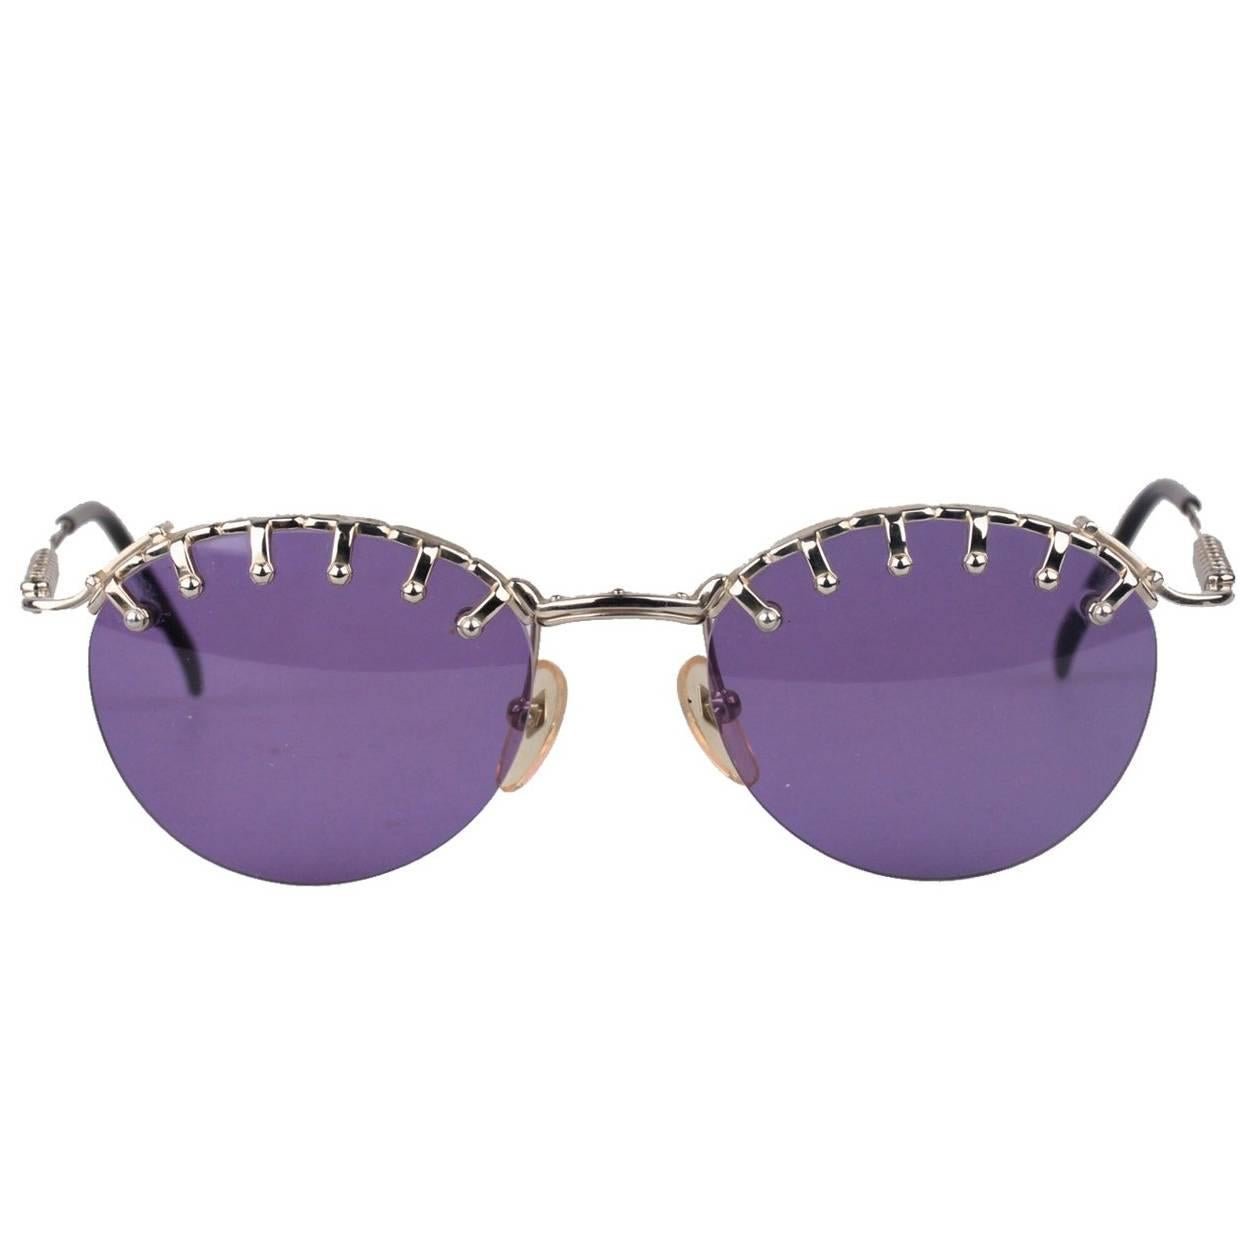 87a0f3a1e99 Jean Paul Gaultier 56-8171 Silver Sunglasses For Sale at 1stdibs